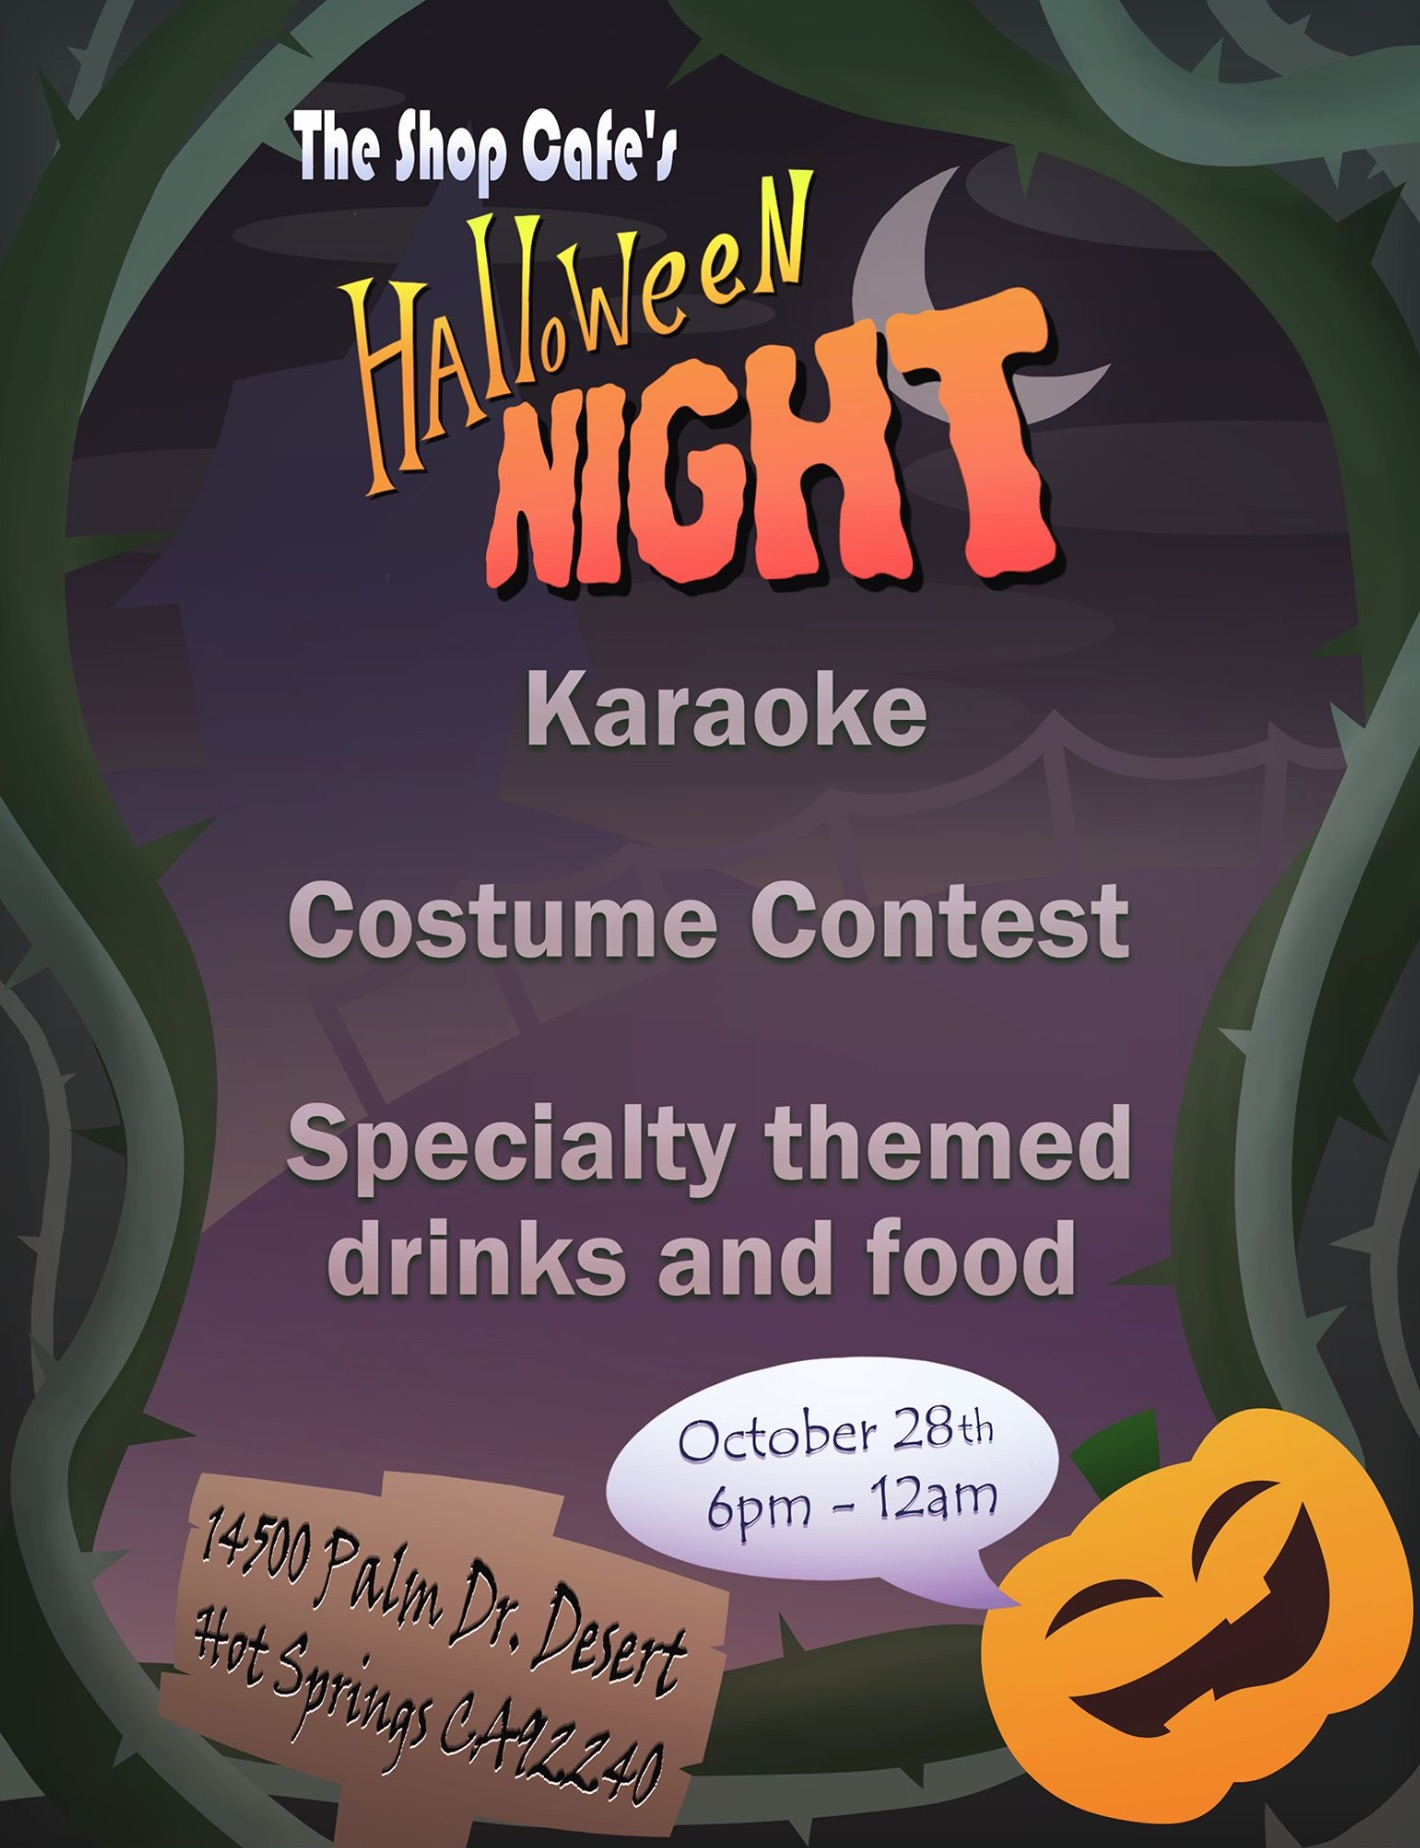 The Shop Cafe Halloween Karaoke Night